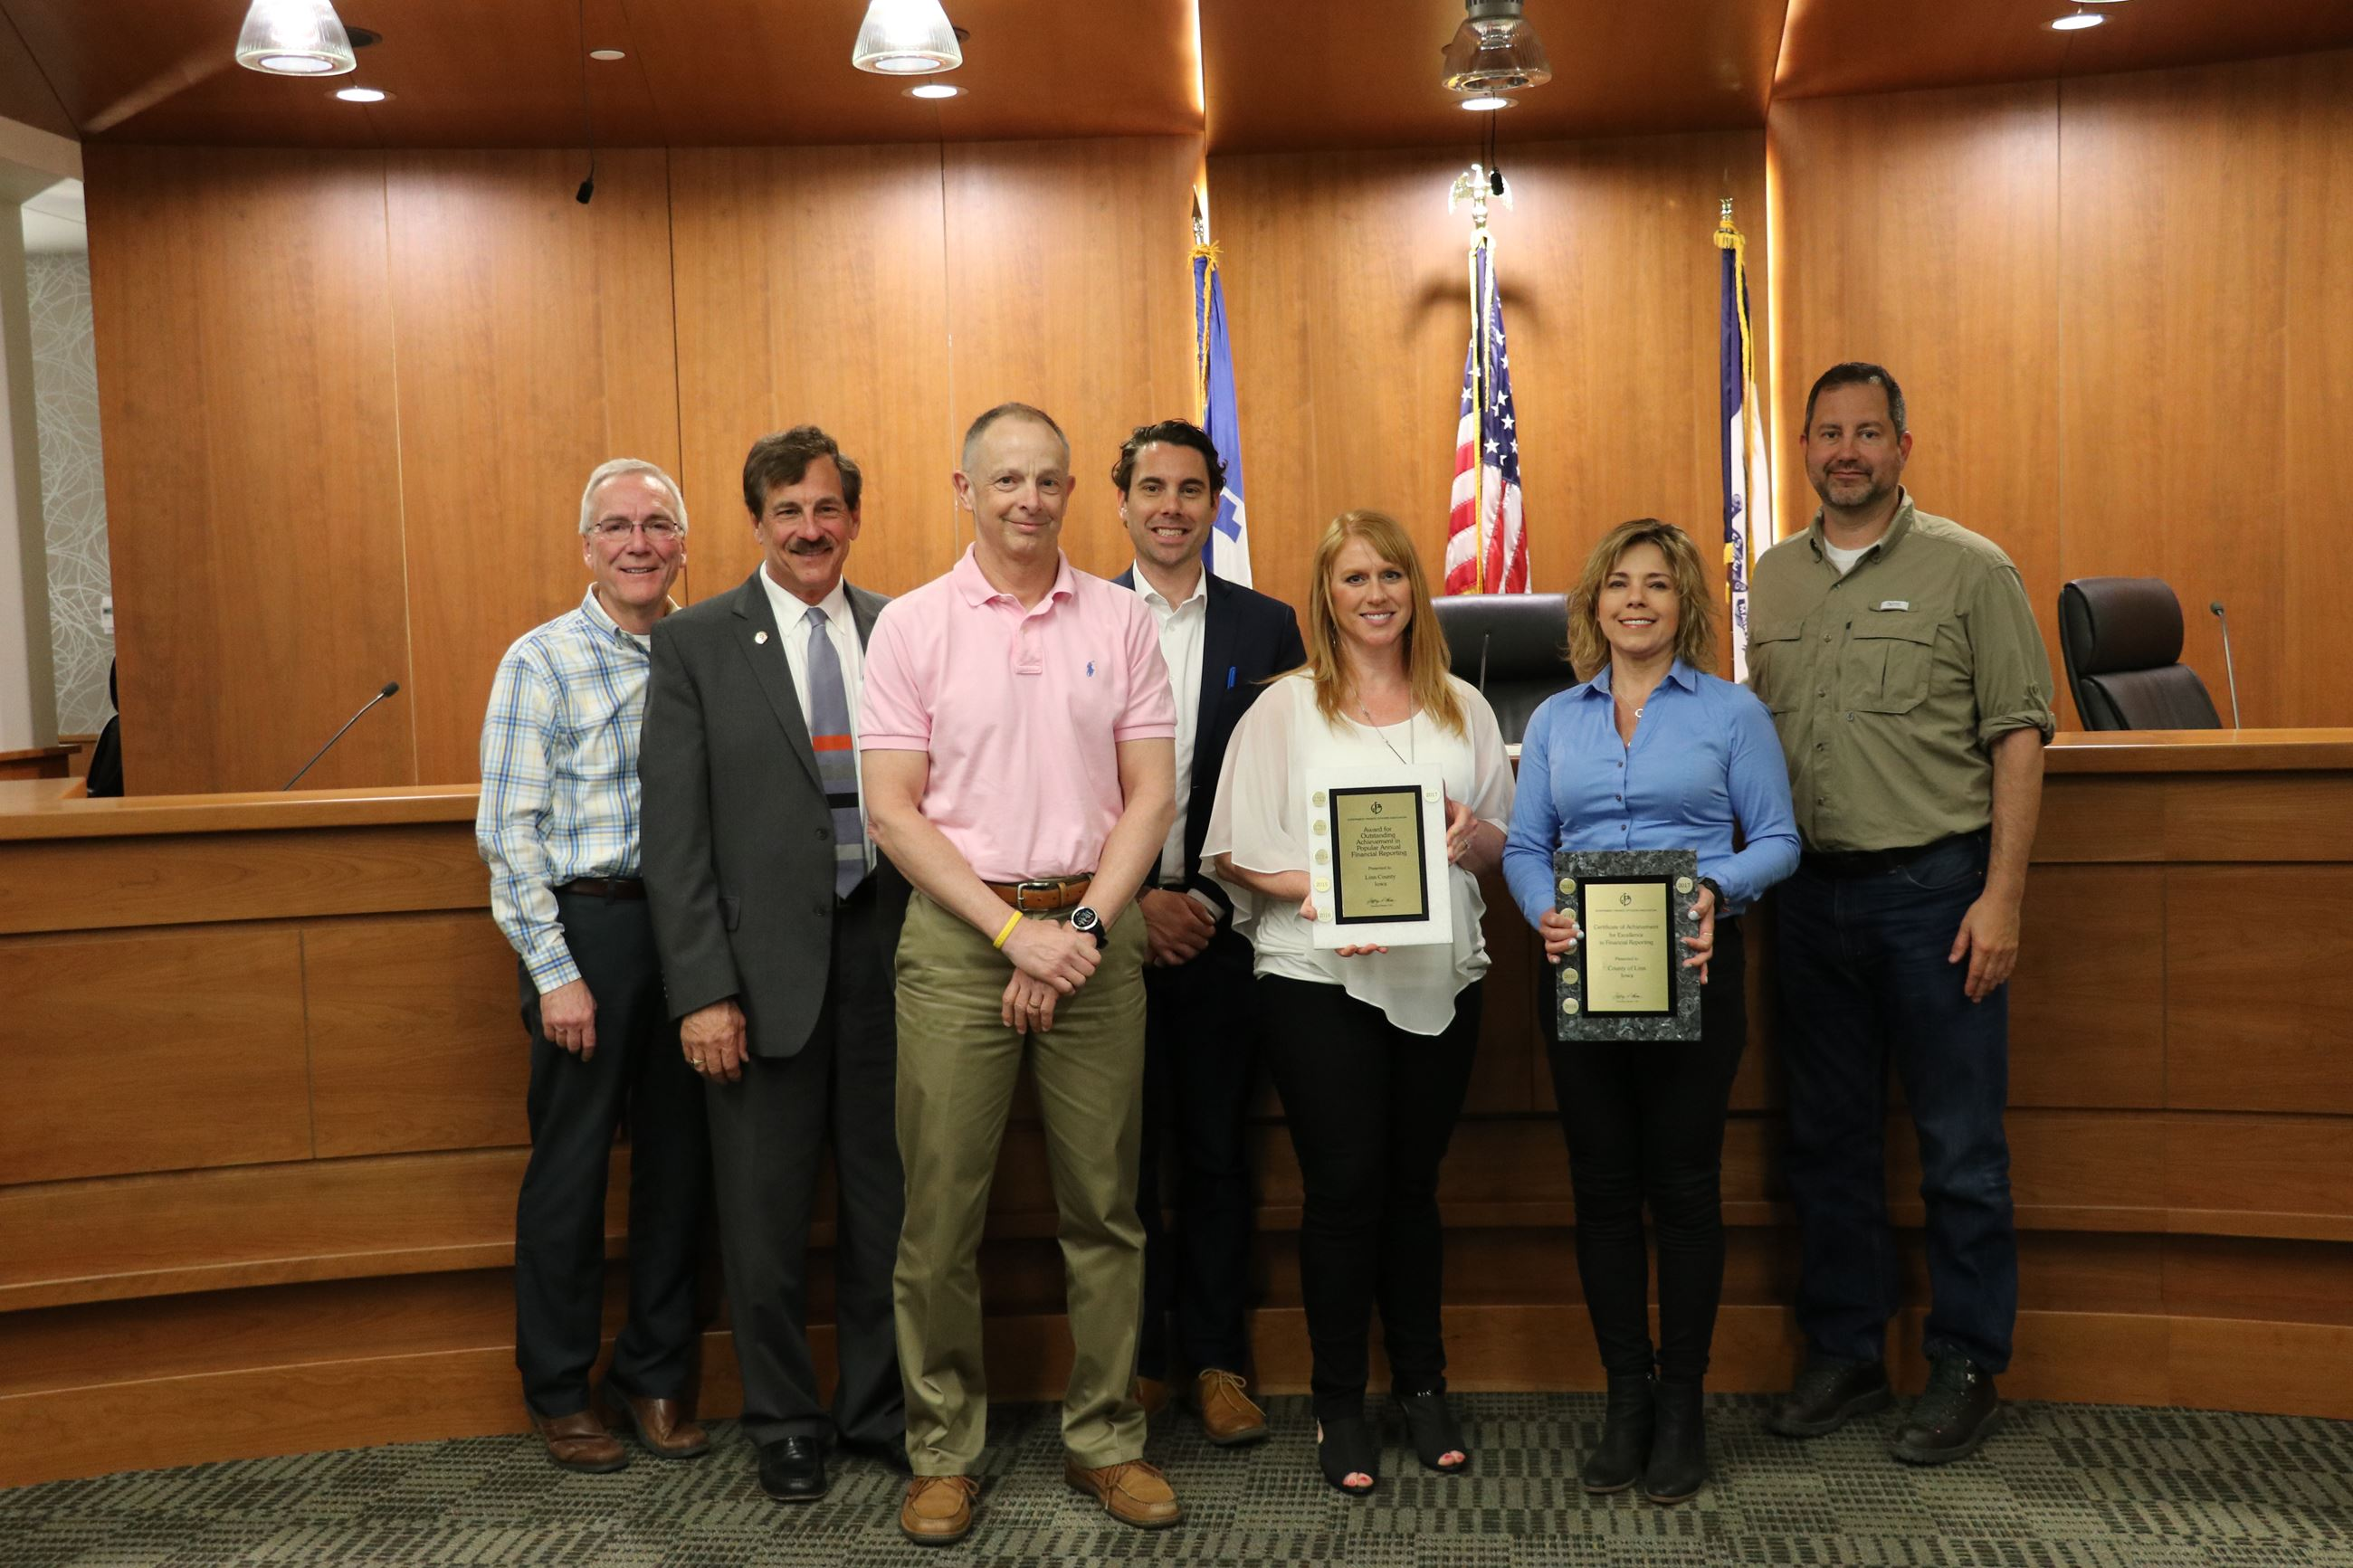 Linn County Board of Supervisors and staff with awards